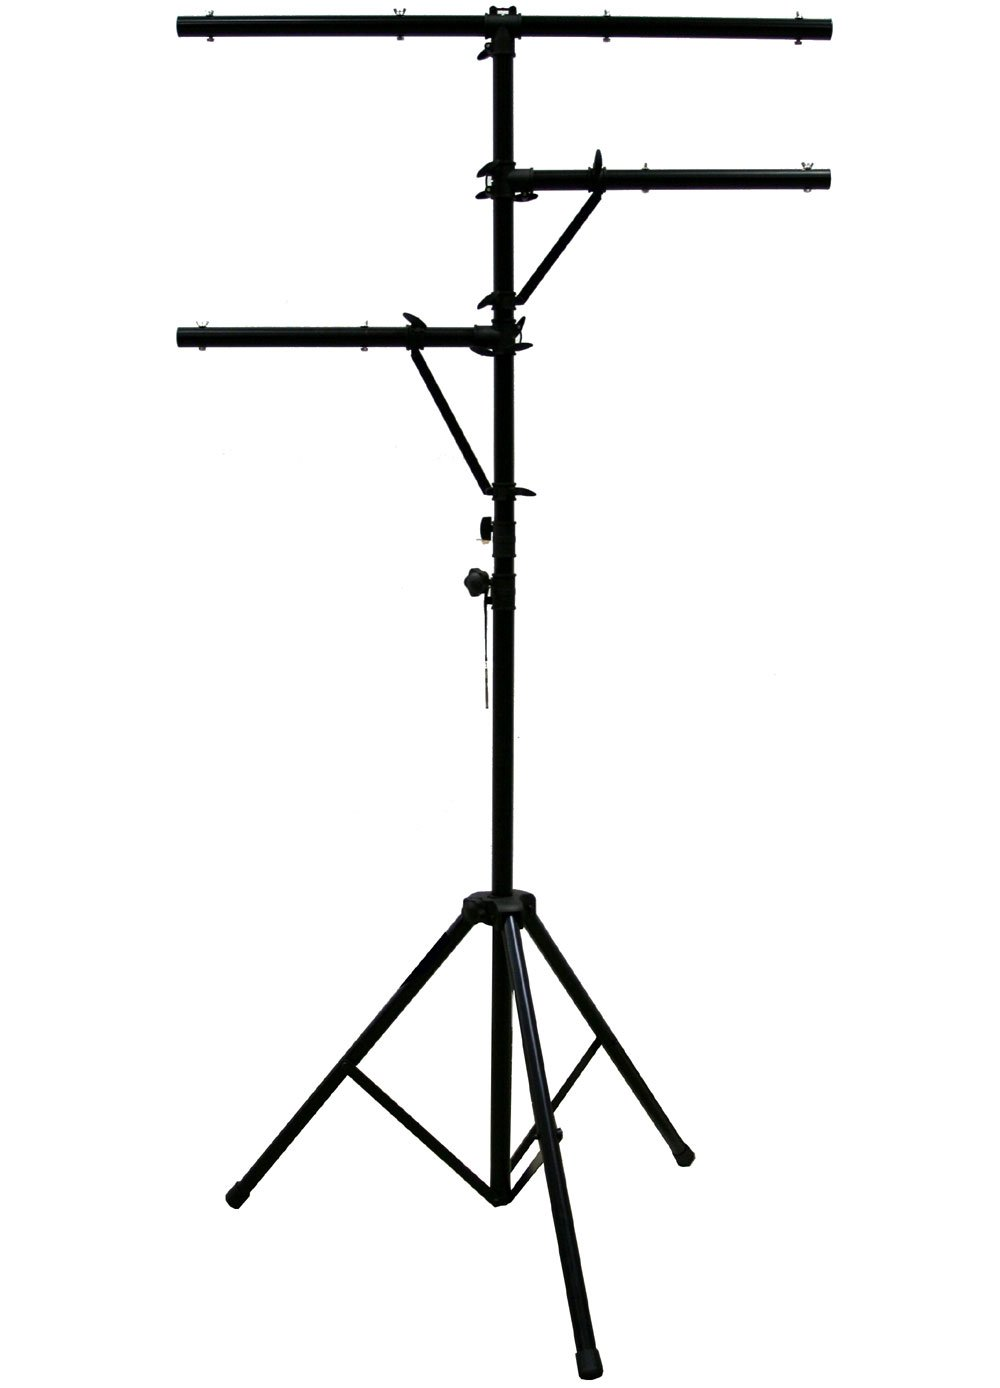 Amazon asc 2 pro audio mobile dj lighting multi arm t bar amazon asc 2 pro audio mobile dj lighting multi arm t bar portable light stand up to 12 foot height tripod musical instruments aloadofball Choice Image